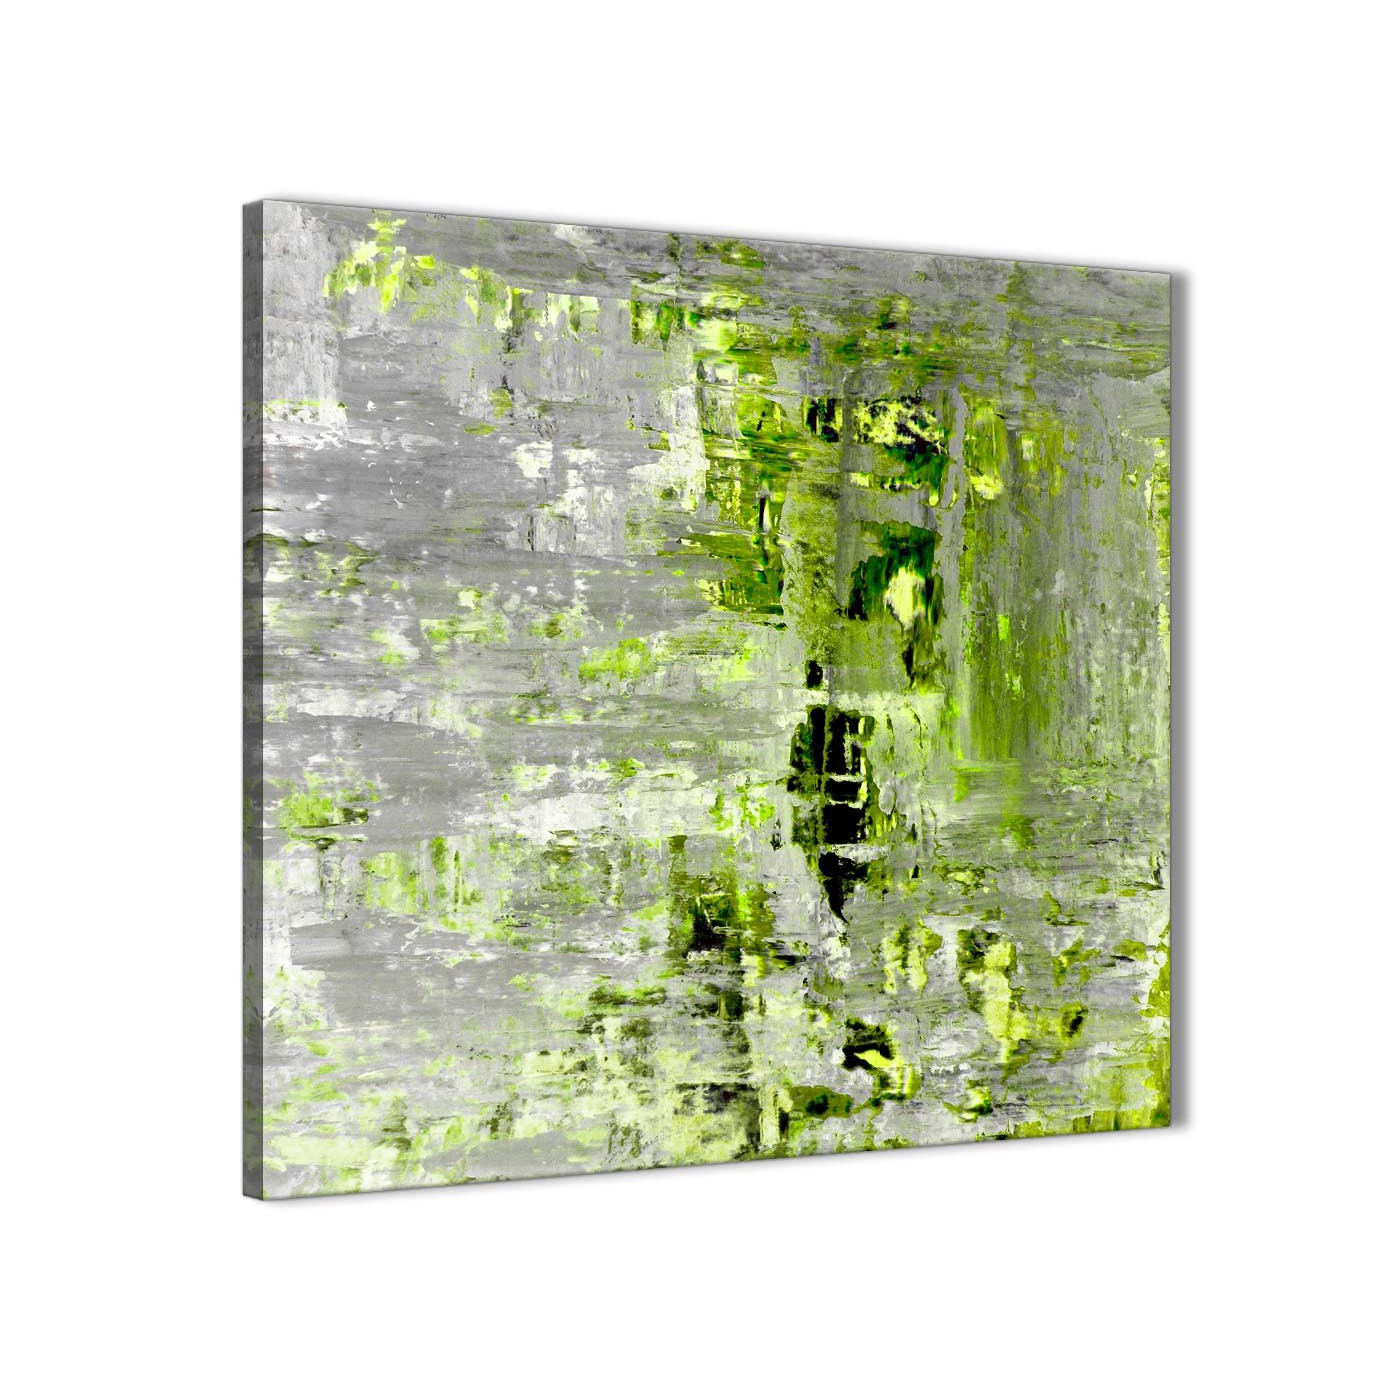 Lime Green Grey Abstract Painting Wall Art Print Canvas  : modern lime green grey abstract painting wall art print canvas modern 49cm square 1s360s for your dining room from www.wallfillers.co.uk size 1400 x 1400 jpeg 304kB